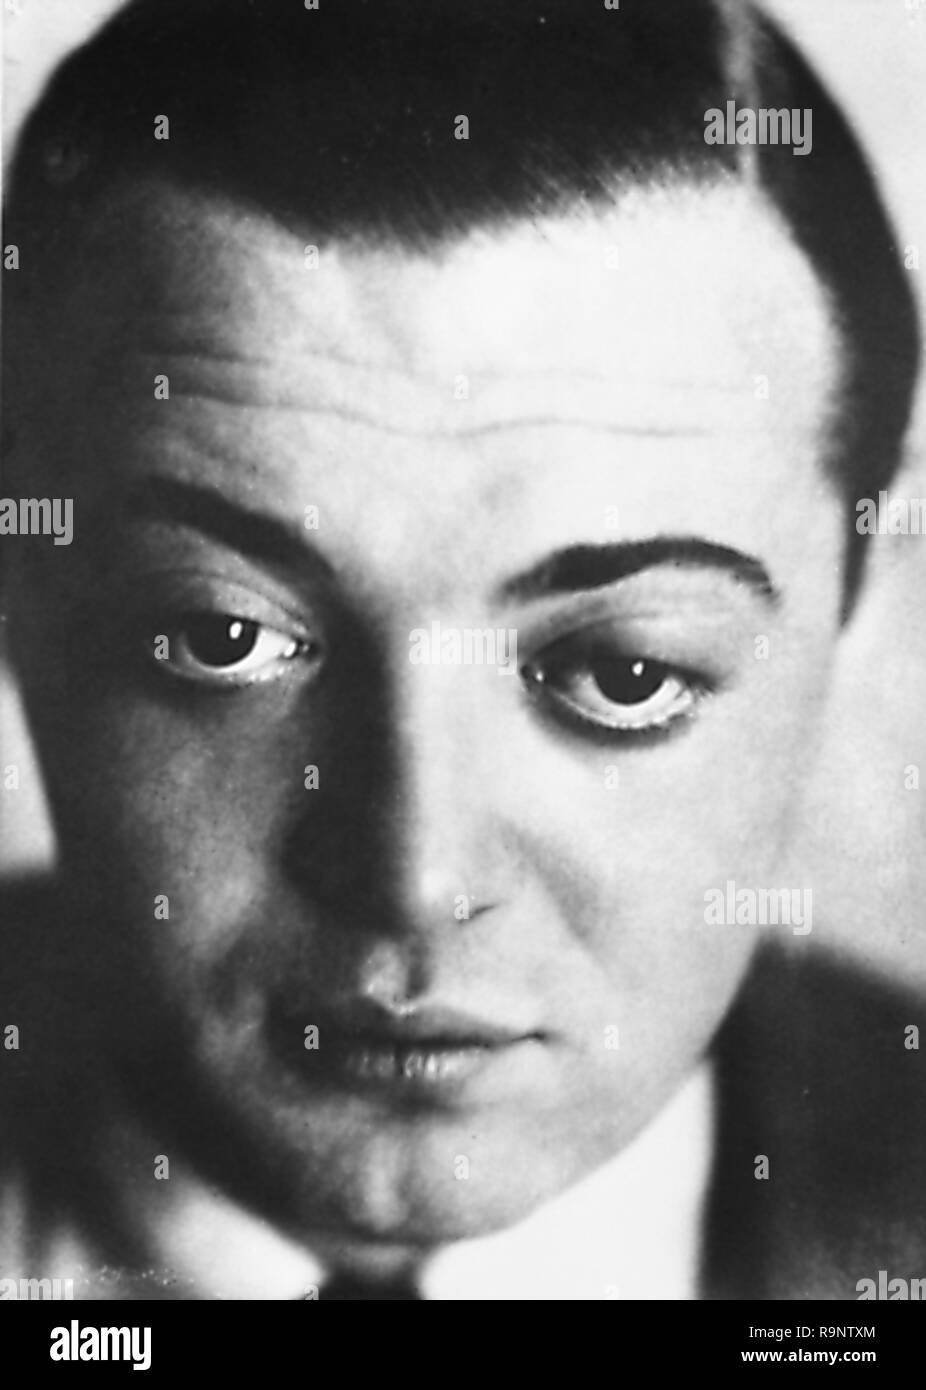 Black and white, close-up, headshot photograph of Austro-Hungarian, American actor Peter Lorre (born Lowenstein Laszlo) facing the camera, looking slightly downwards, and furrowing his brow, photographed in Berlin, circa 1930, by the German-American portrait photographer Lotte Jacobi (1896-1990), 1930. () - Stock Image